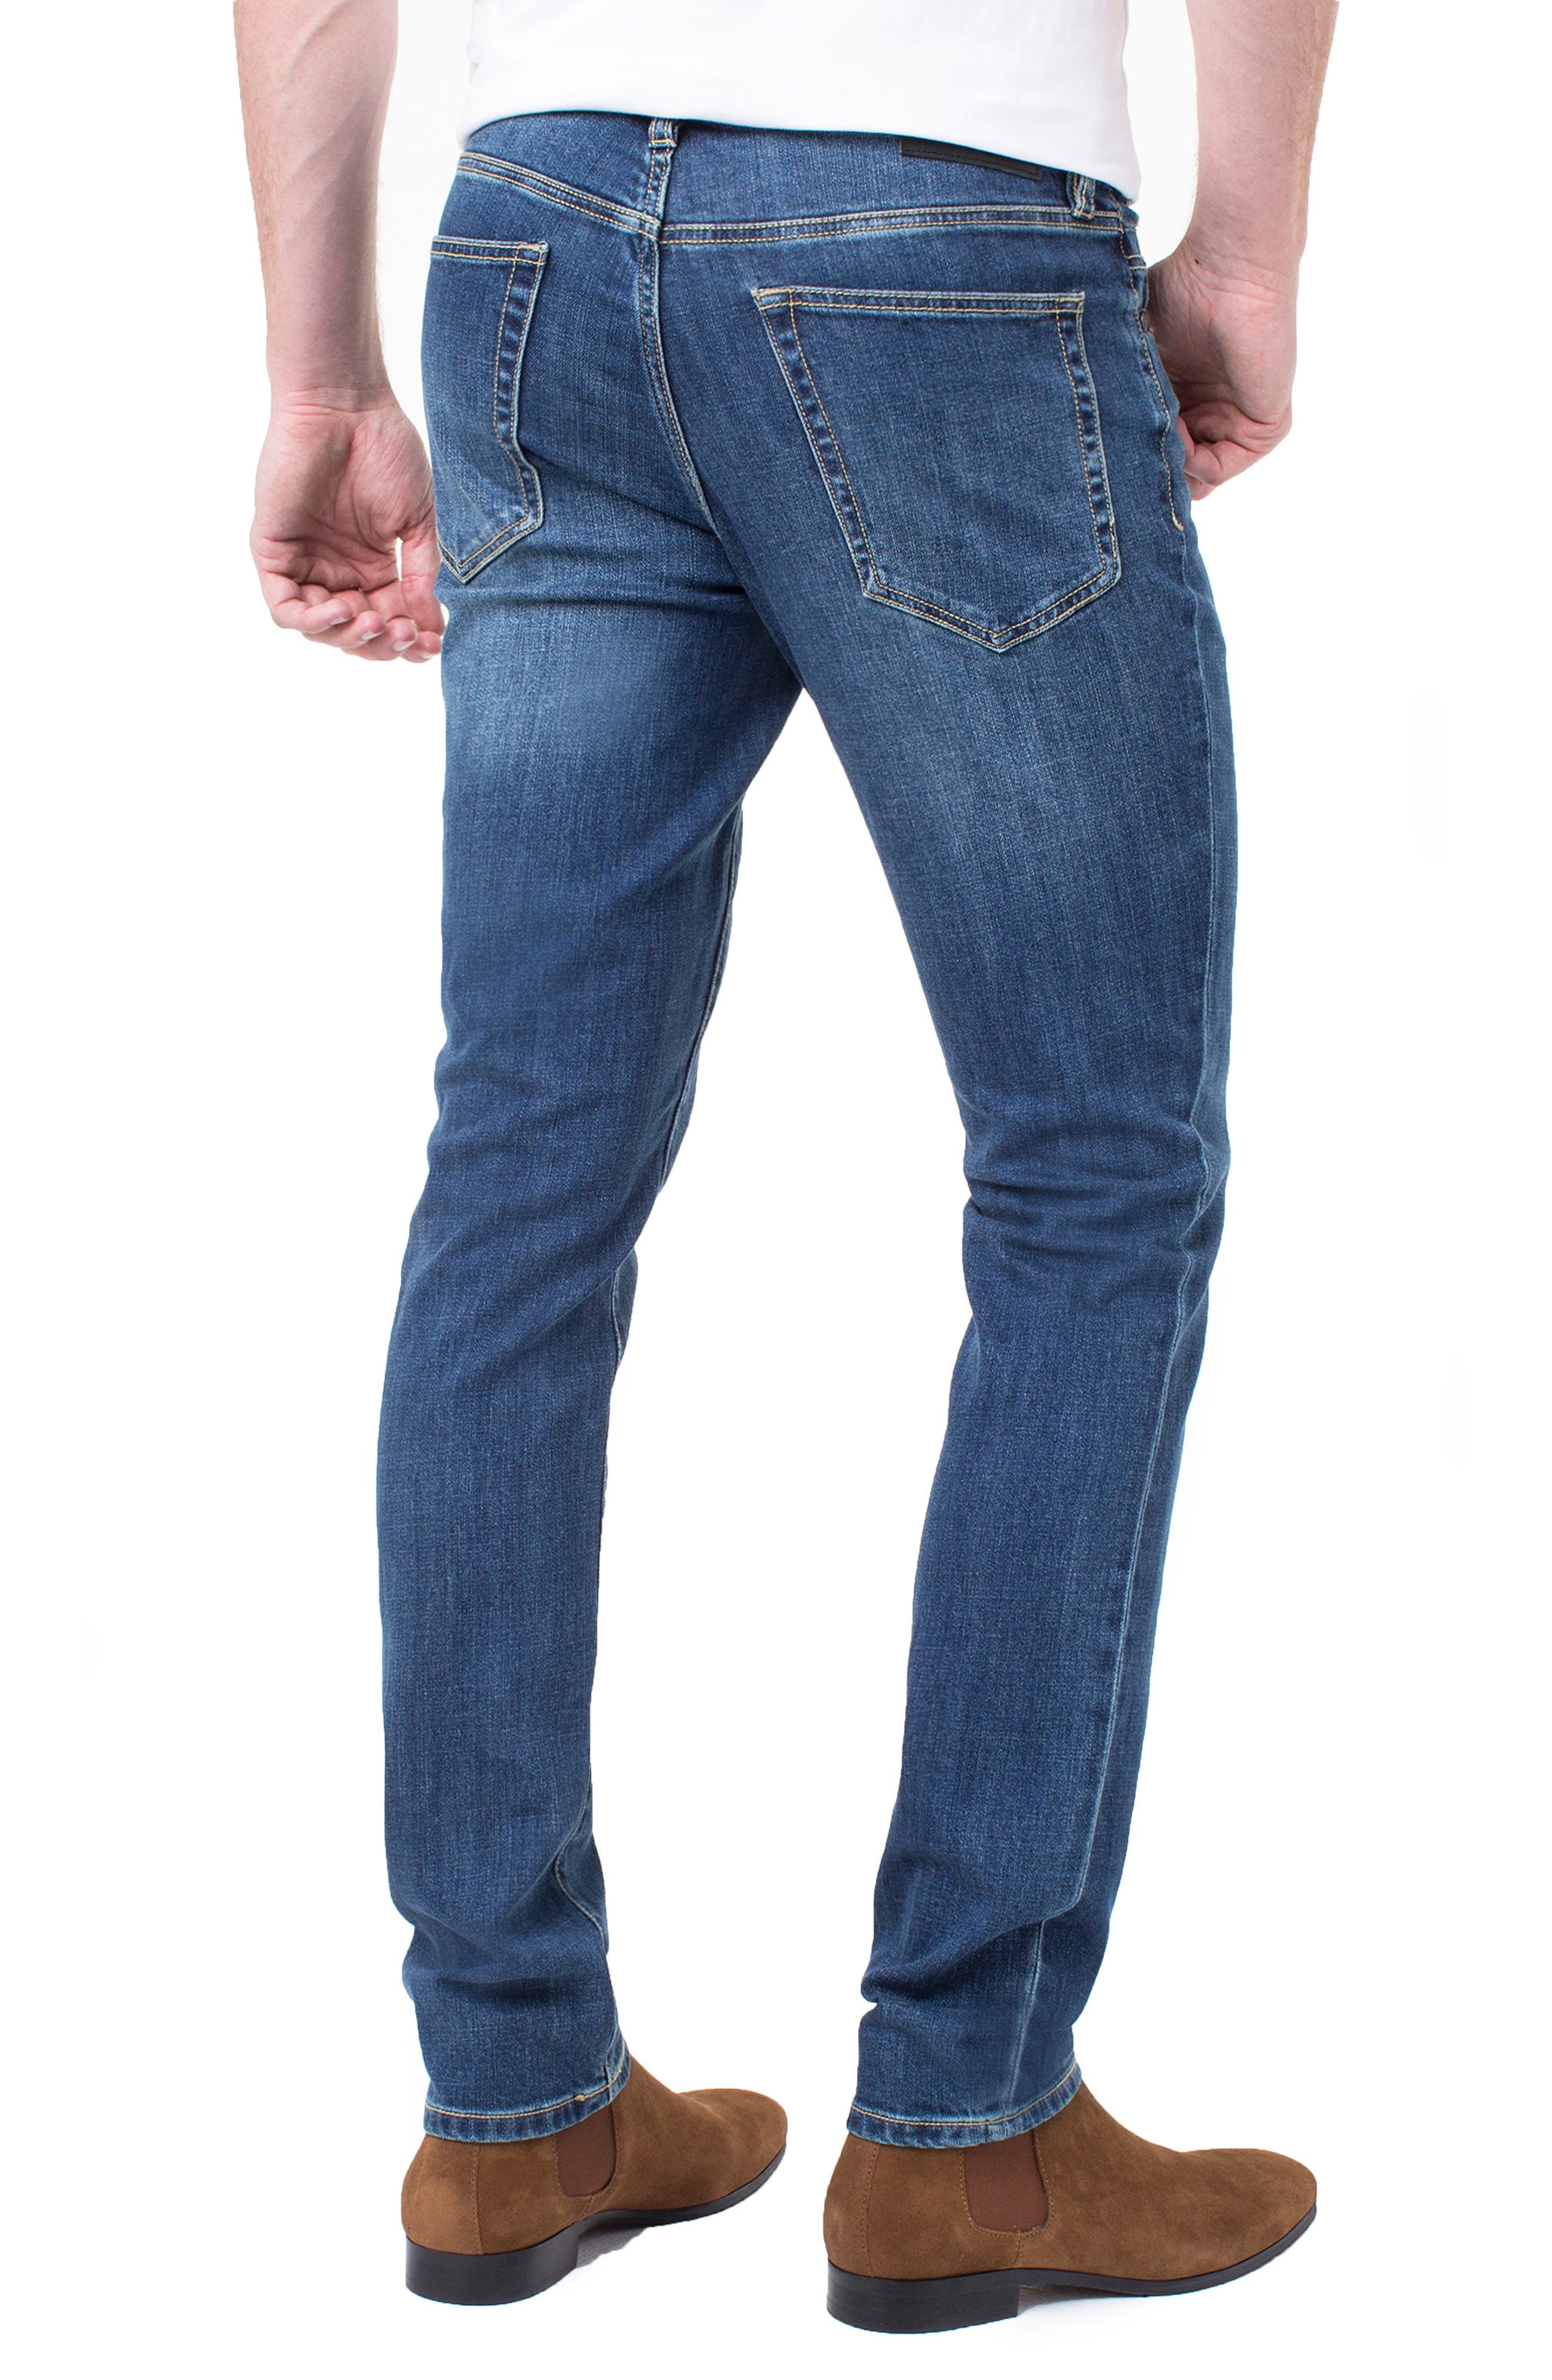 Kingston Slim Straight Leg Jeans,                             Alternate thumbnail 2, color,                             MARINA DARK